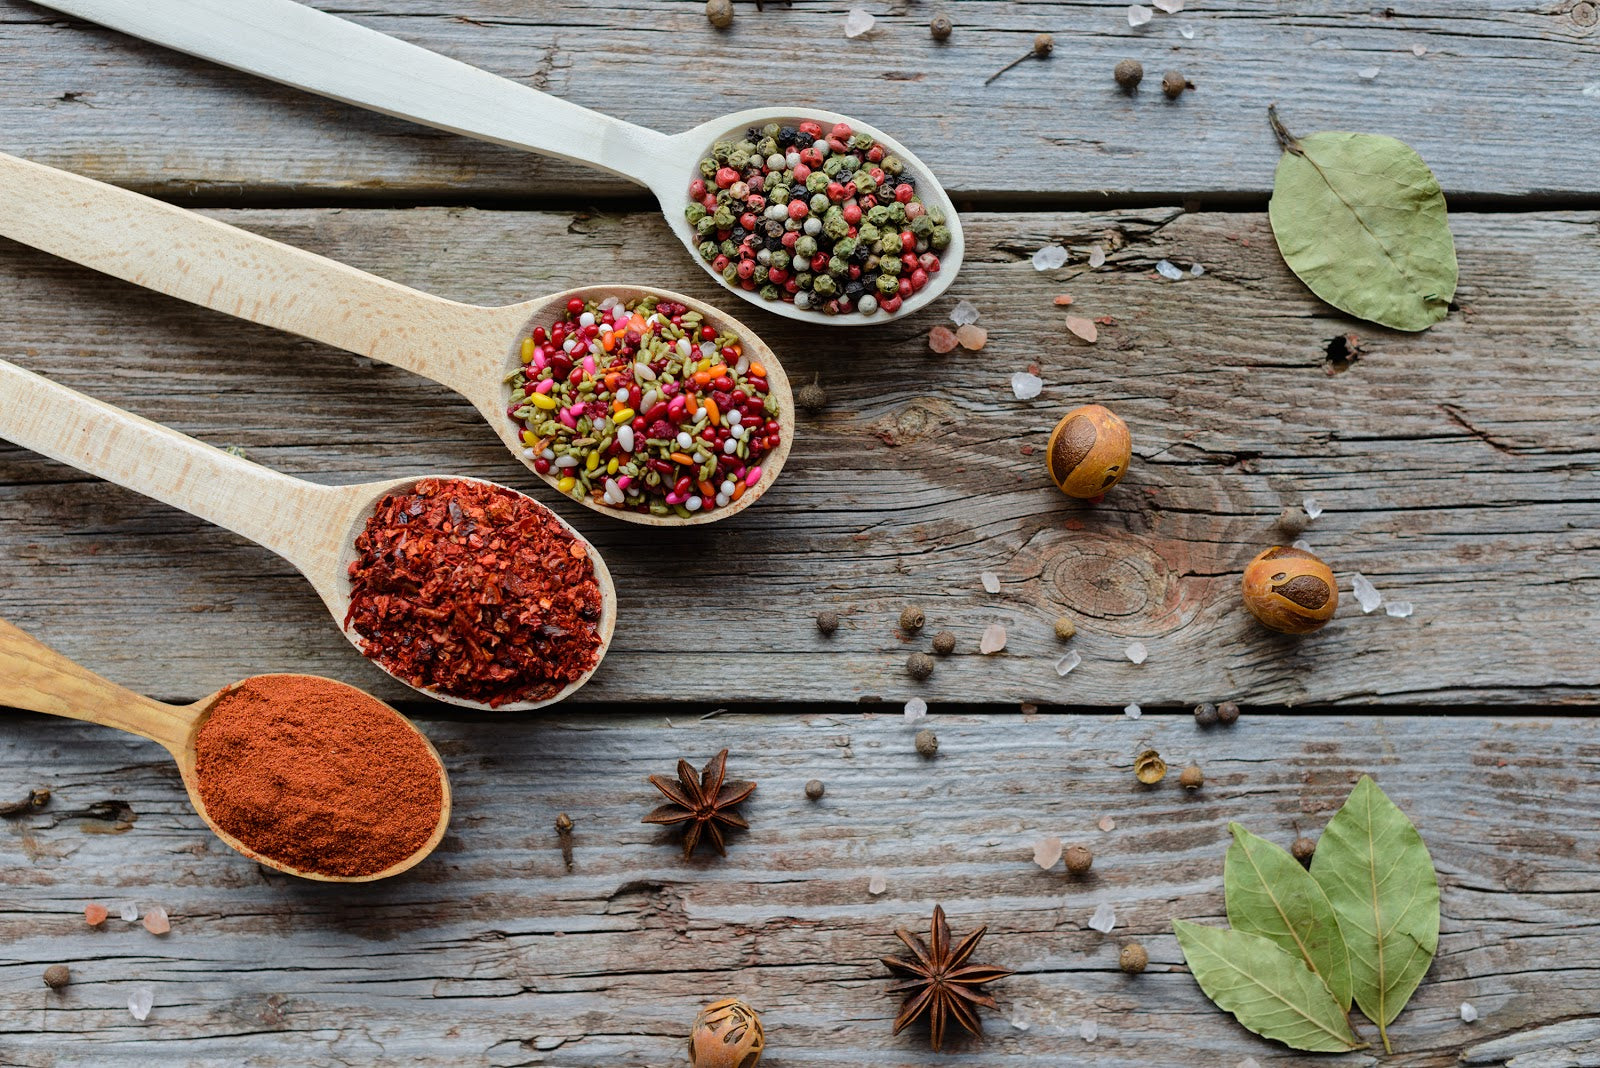 Adaptogenic herbs: Spoonfuls of spices